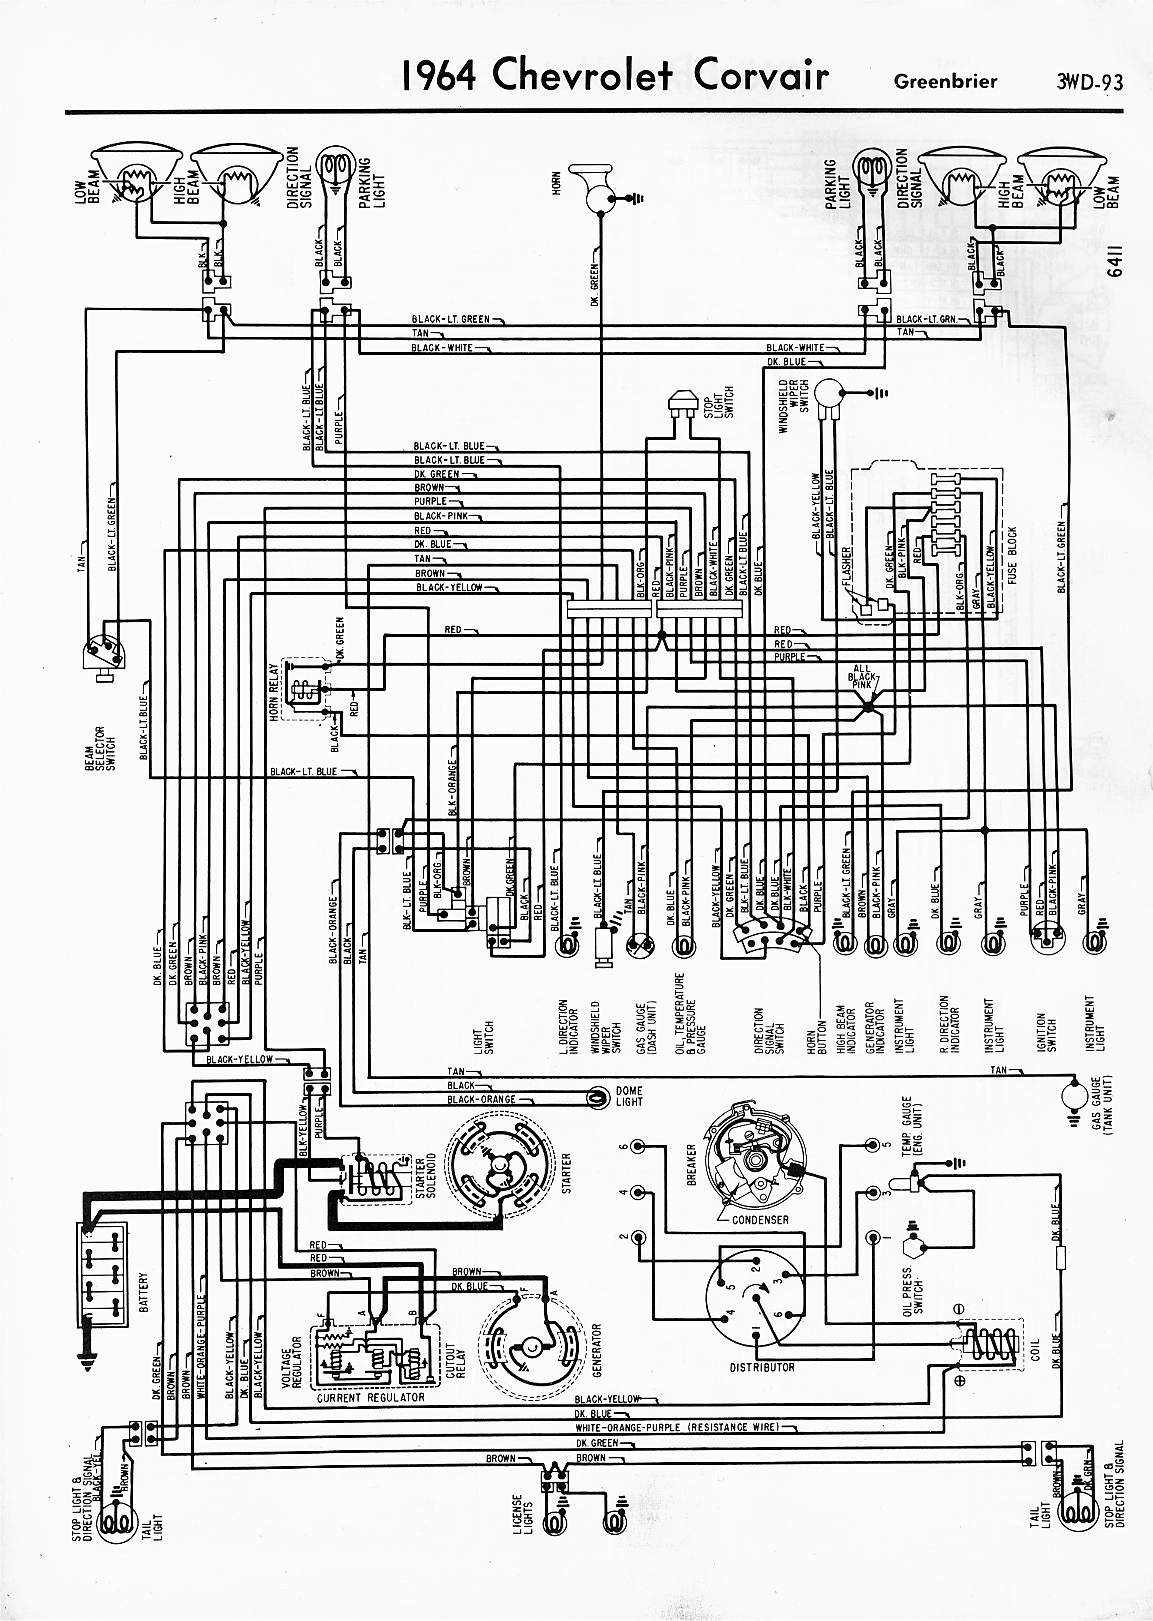 Snap Hino Truck Wiring Diagram Harness Auto Peterbilt For Pinterest Get Free Image About Radio